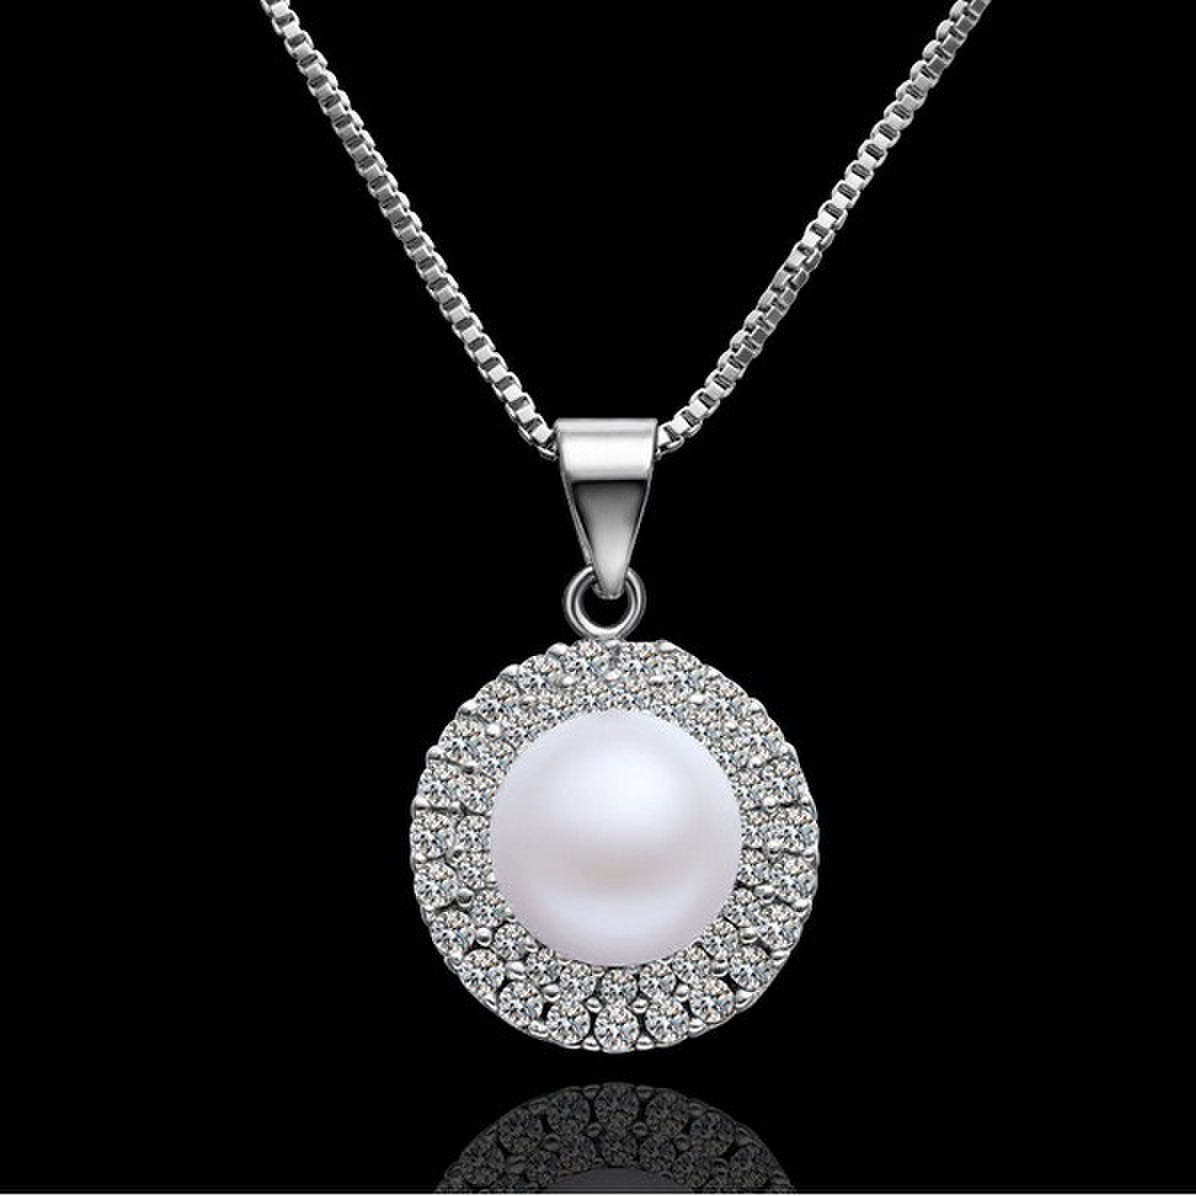 natural pearl pendant solid silver charm necklace long. Black Bedroom Furniture Sets. Home Design Ideas